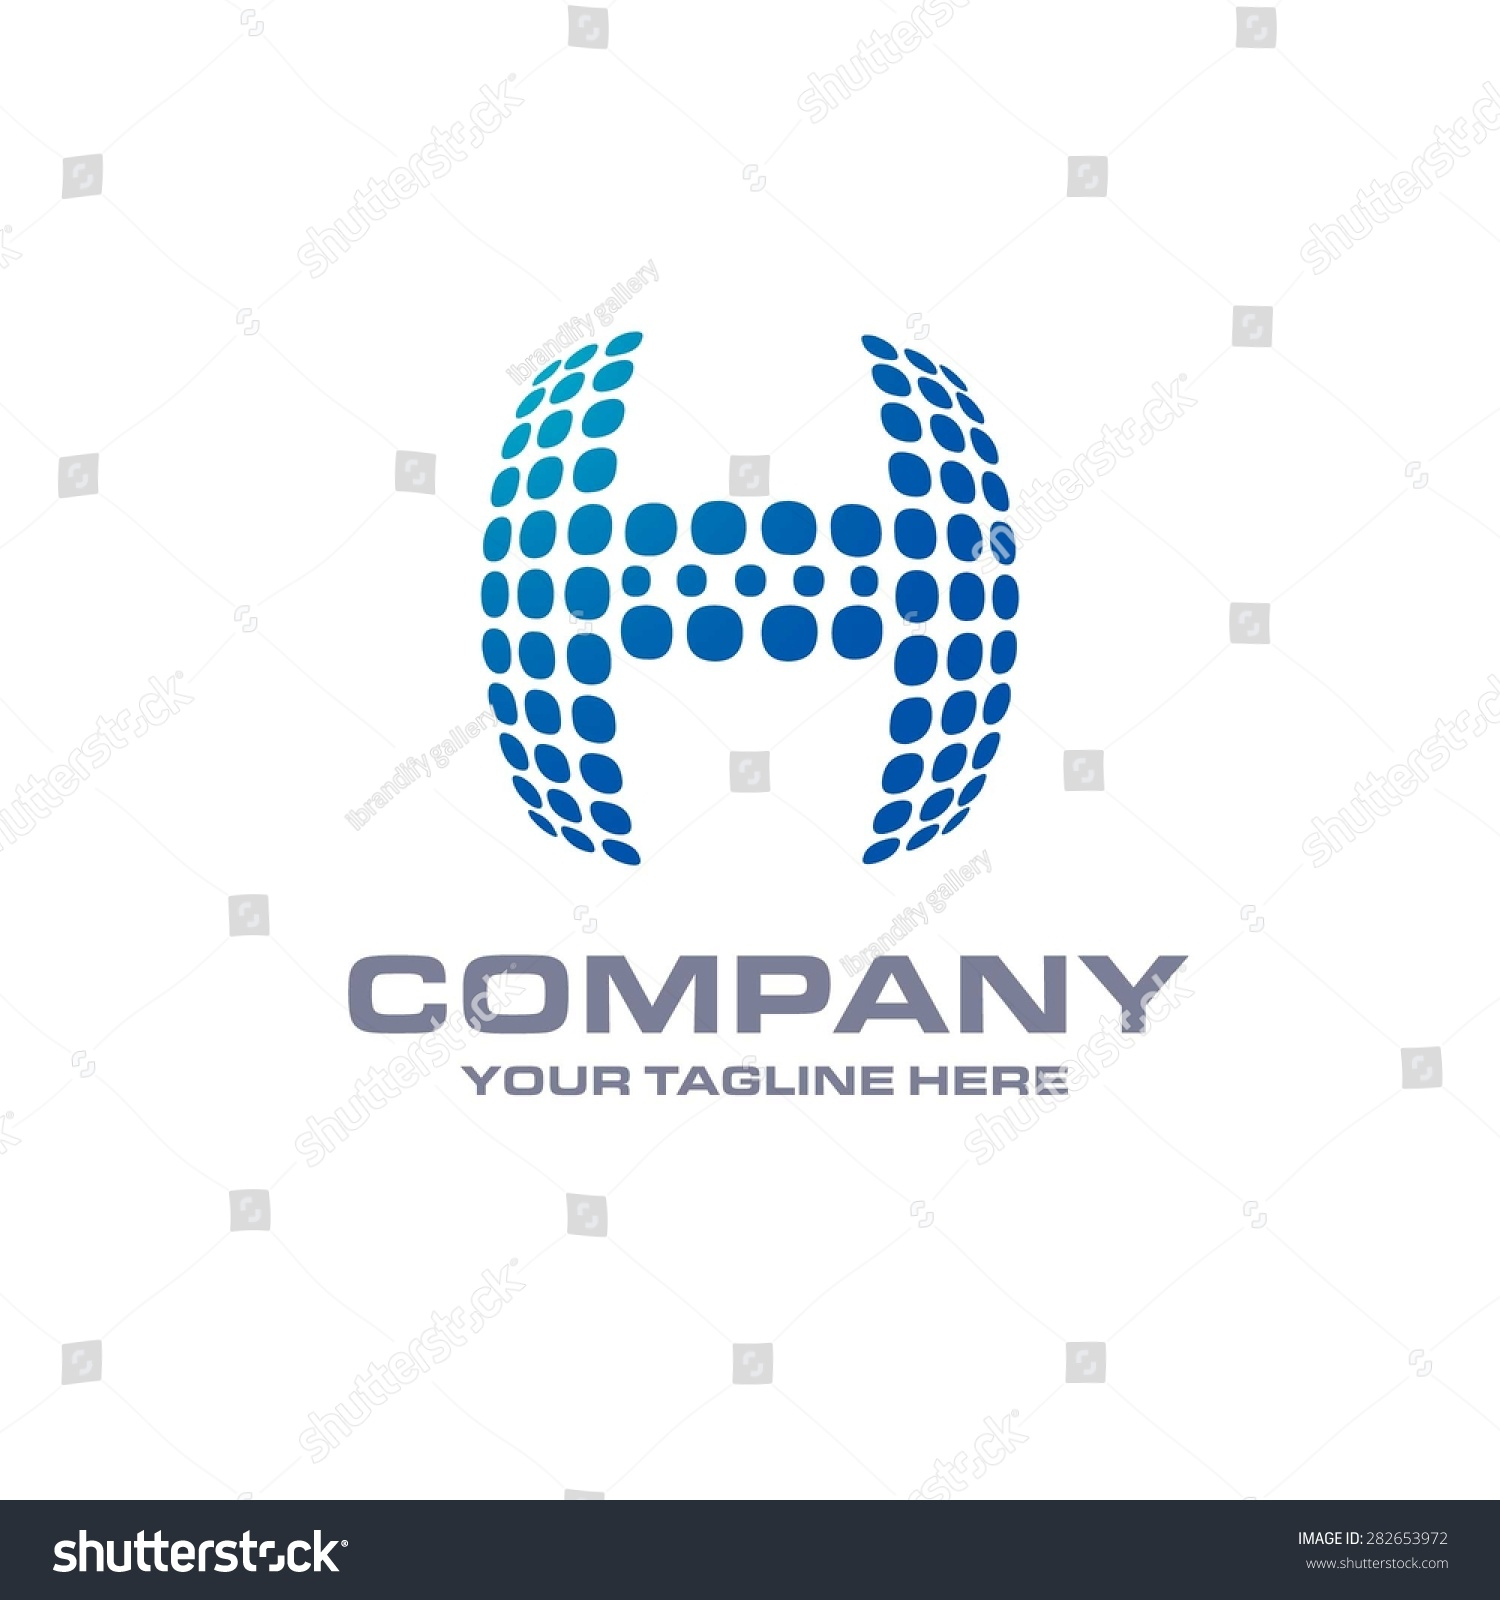 H tag background image - Letter H Logo Blue Bold Sphare Logo On White Background Place For Company Name